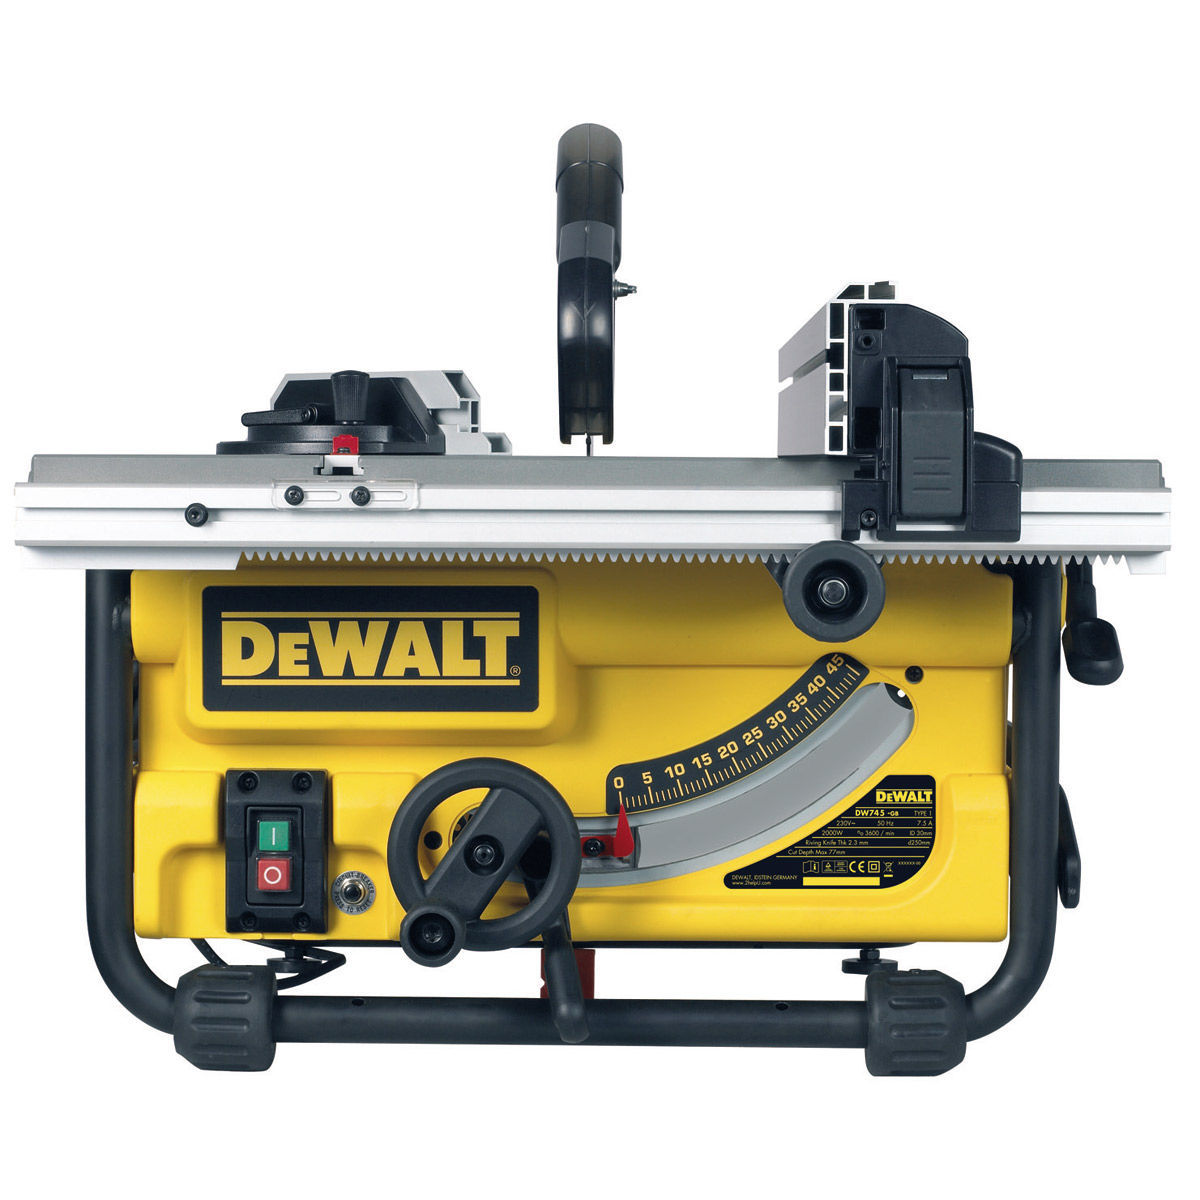 toolstop dewalt dw745 table saw heavy duty lightweight 10. Black Bedroom Furniture Sets. Home Design Ideas